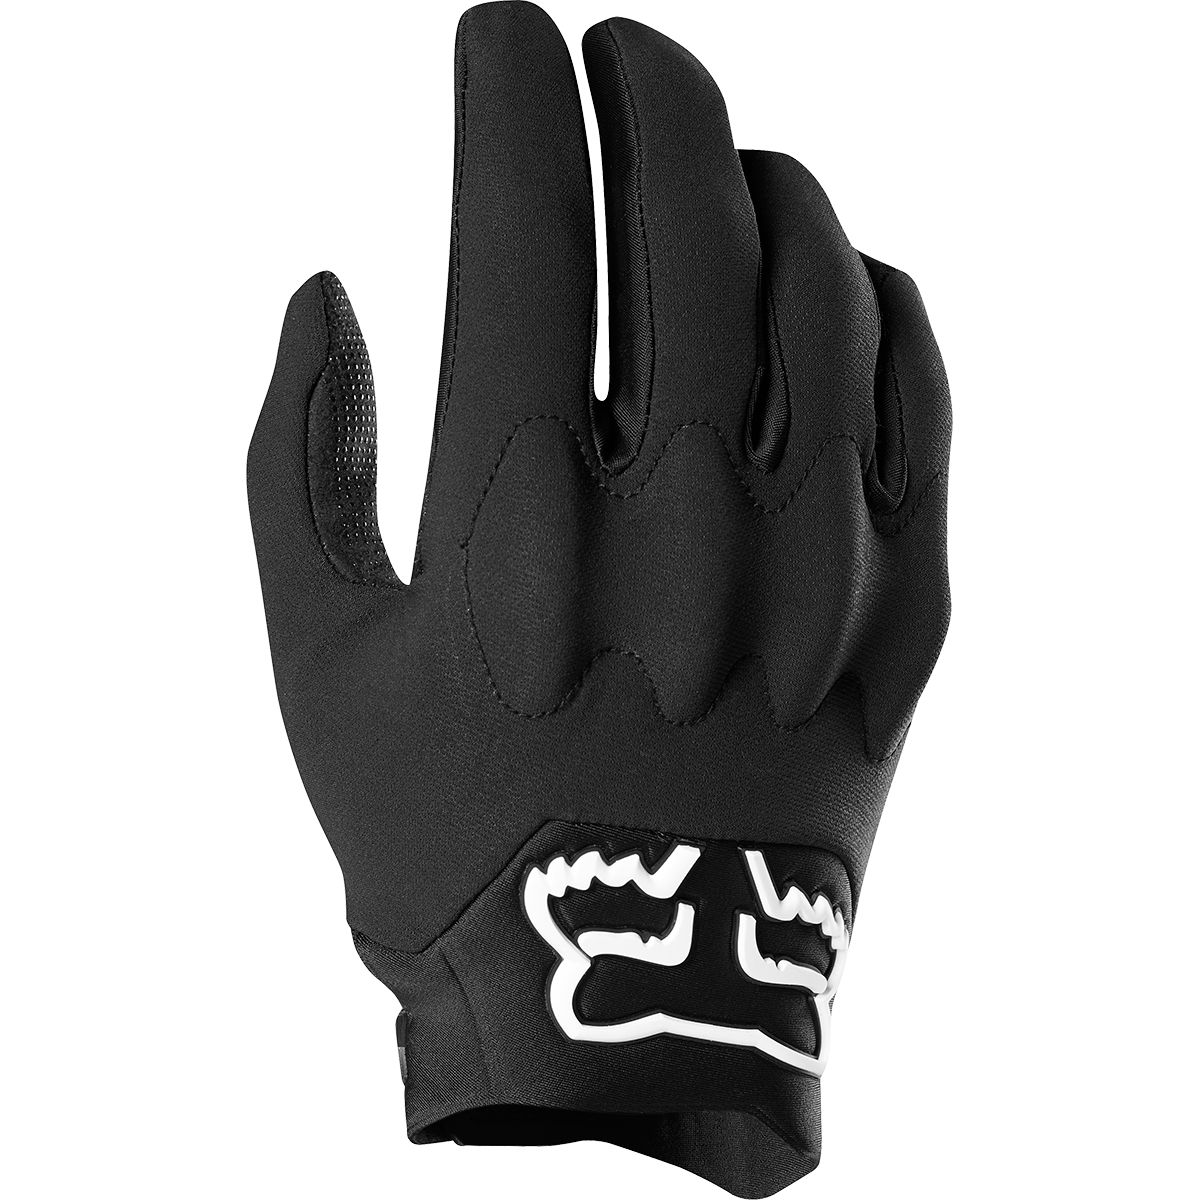 ATTACK FIRE GLOVE for winter